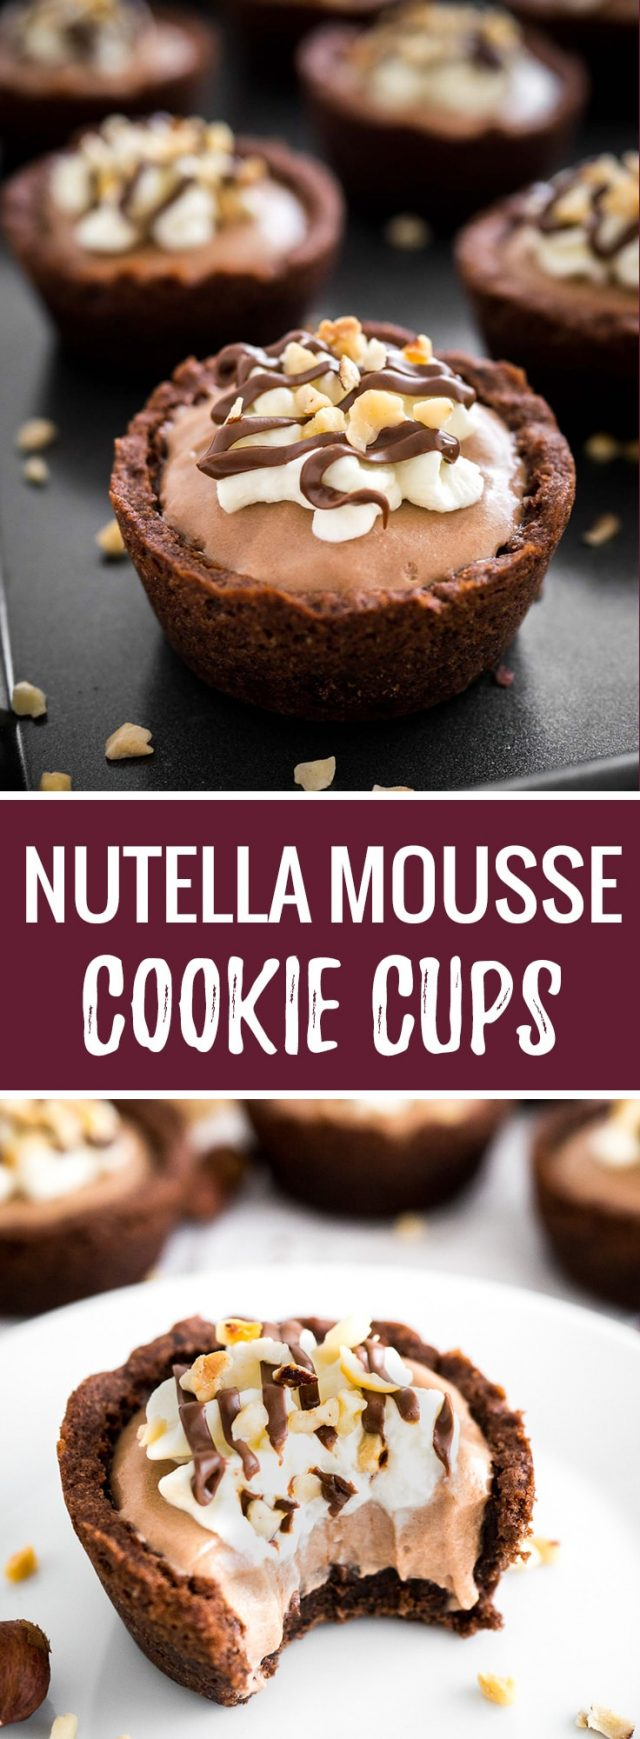 These Nutella Mousse Cookie Cups are the perfect way to indulge! They taste insanely delicious and are great for parties and special occasions. I promise, you just found your favorite way to eat Nutella.